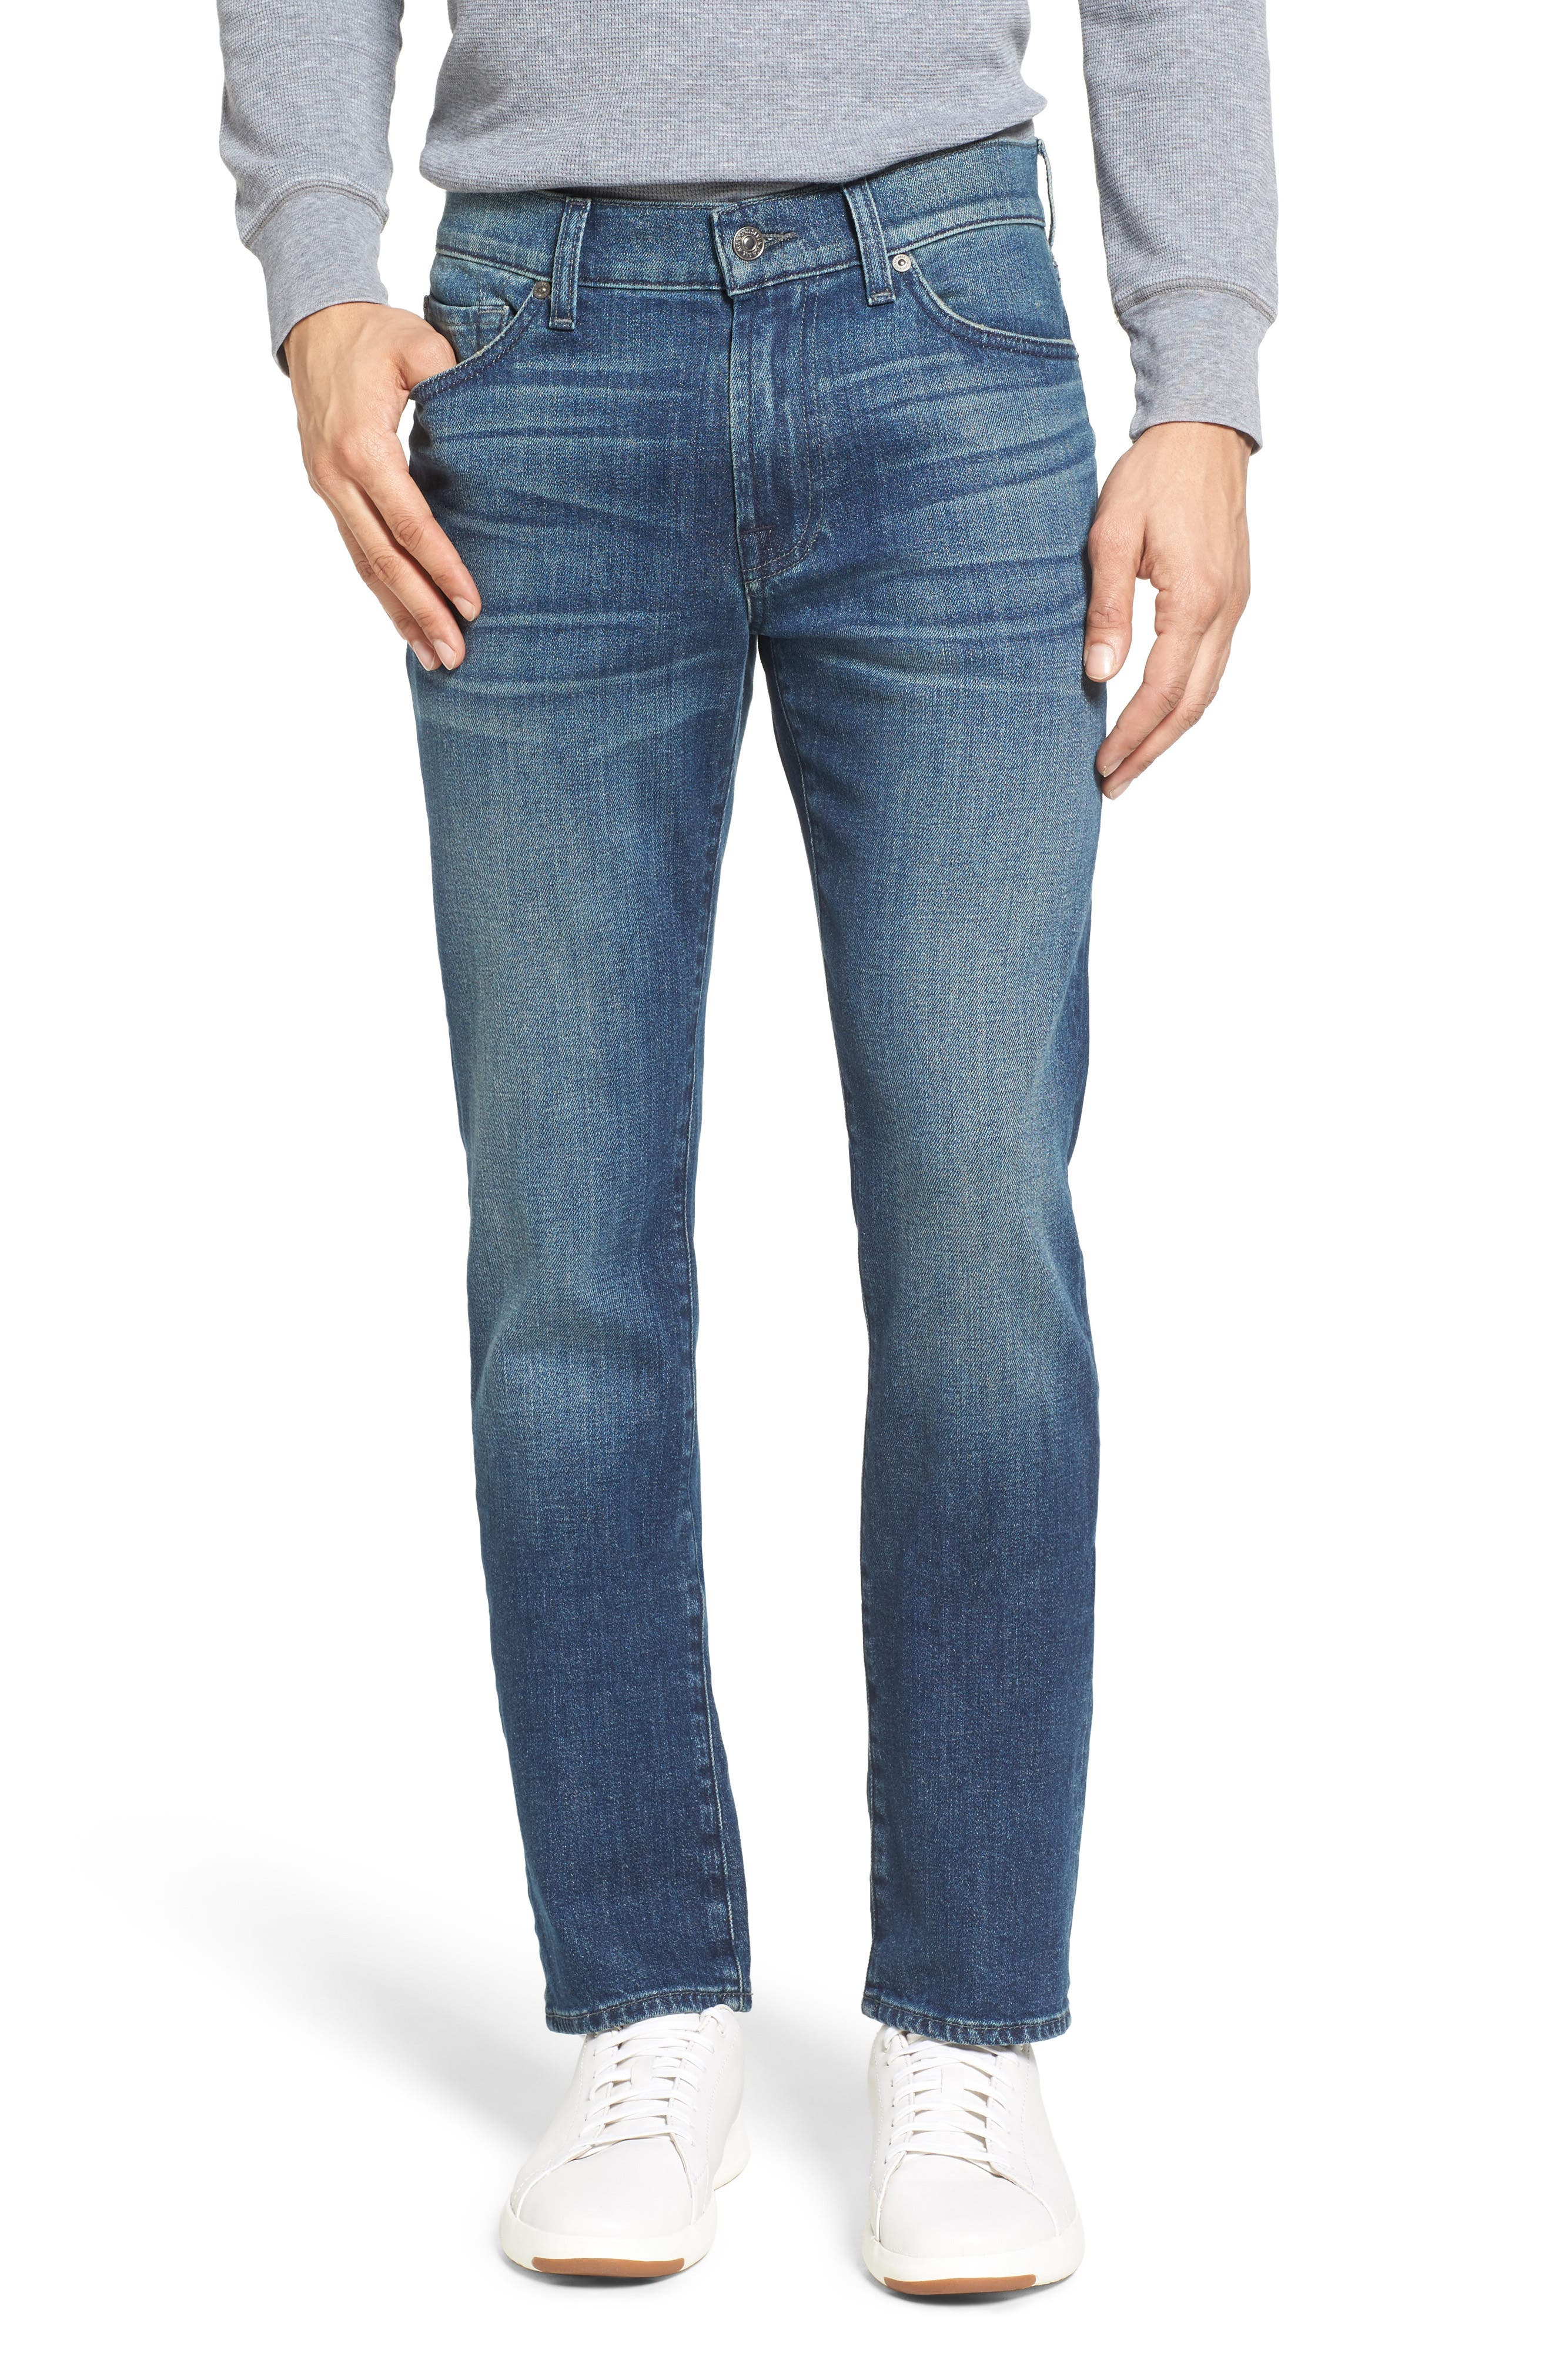 7 For All Mankind Slimmy Slim Fit Jeans,                             Main thumbnail 1, color,                             Calgary Blue